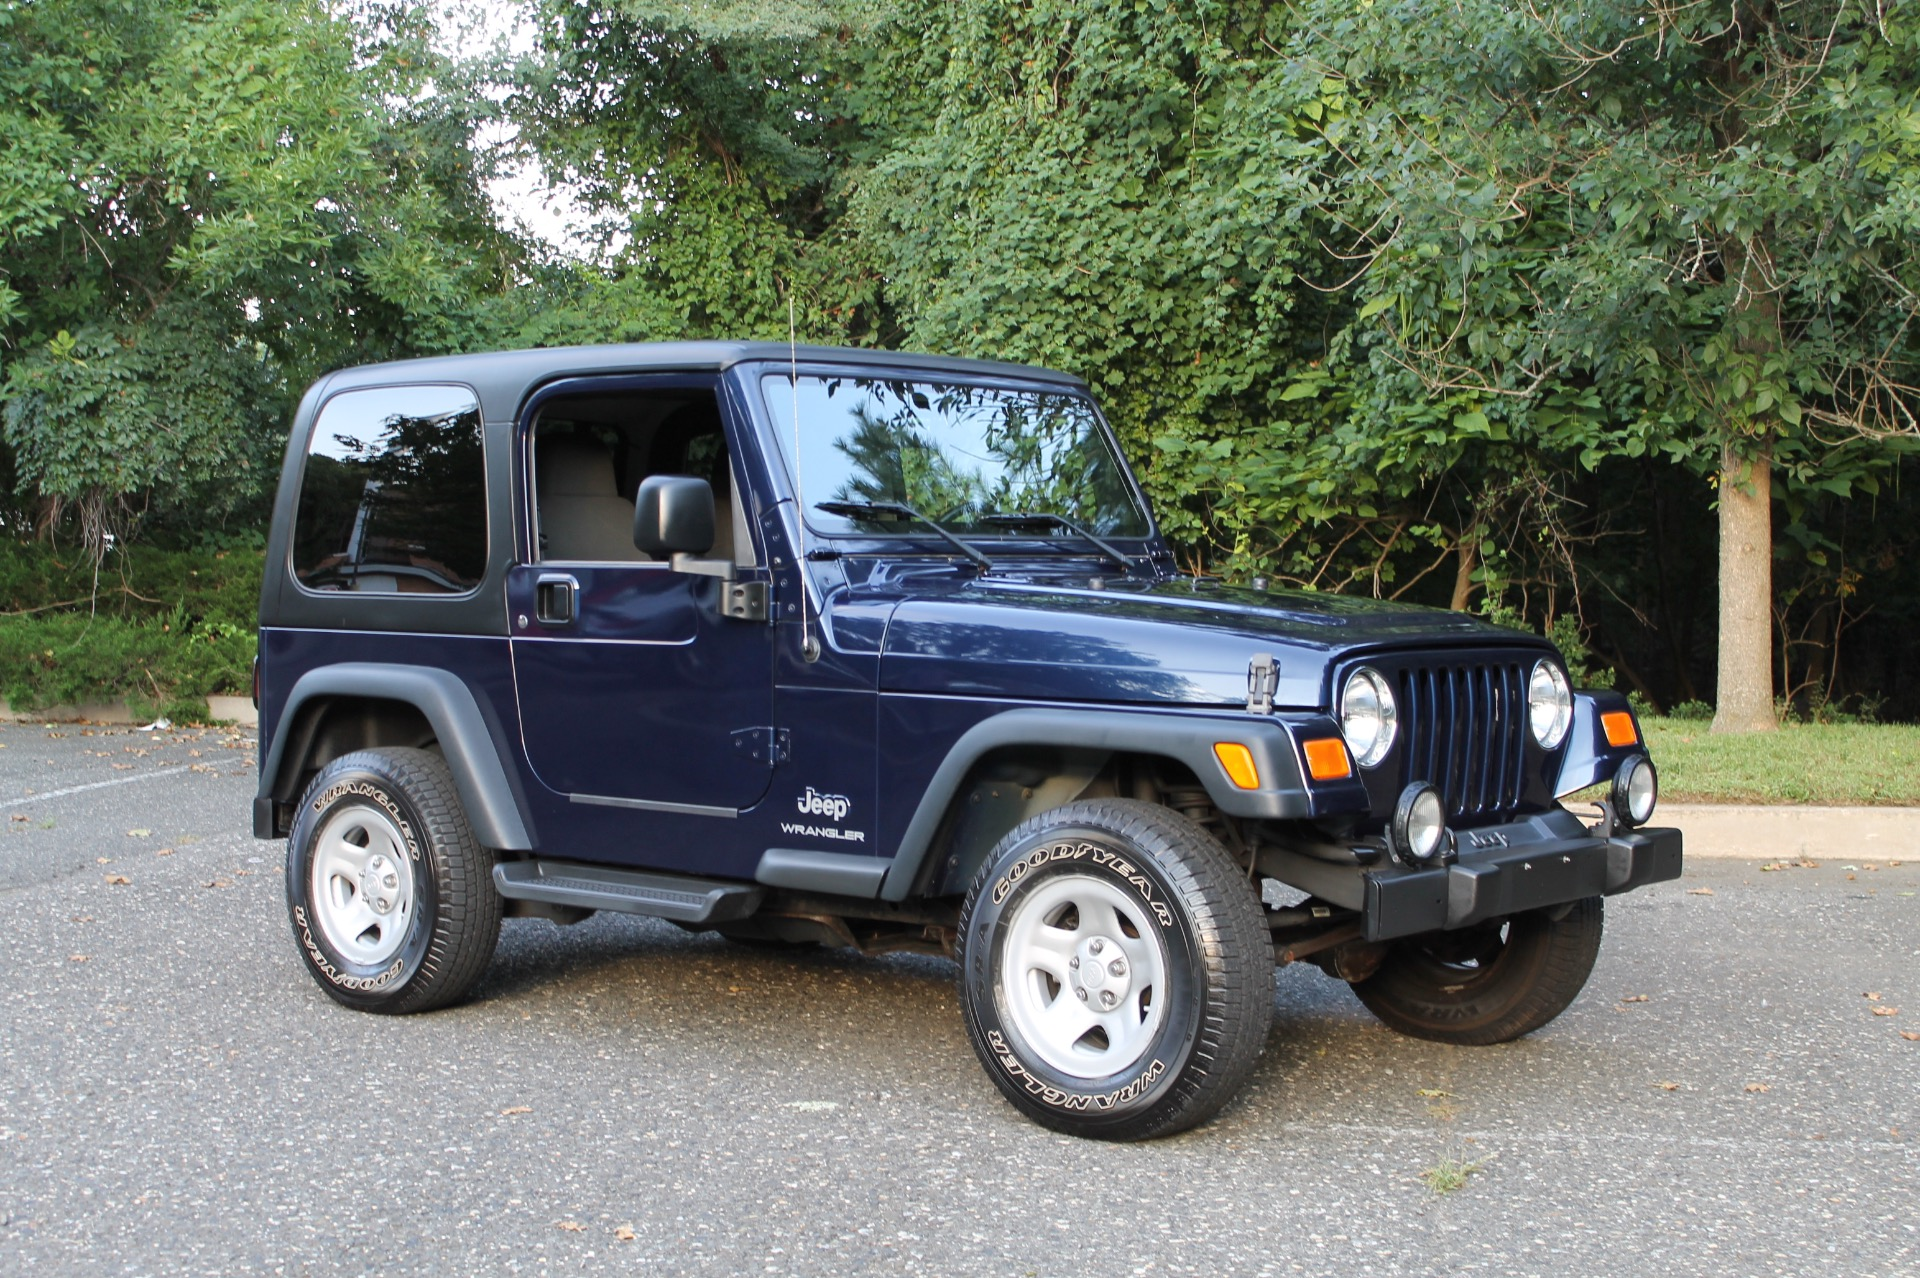 Used-2006-Jeep-Wrangler-SE-Automatic-SE